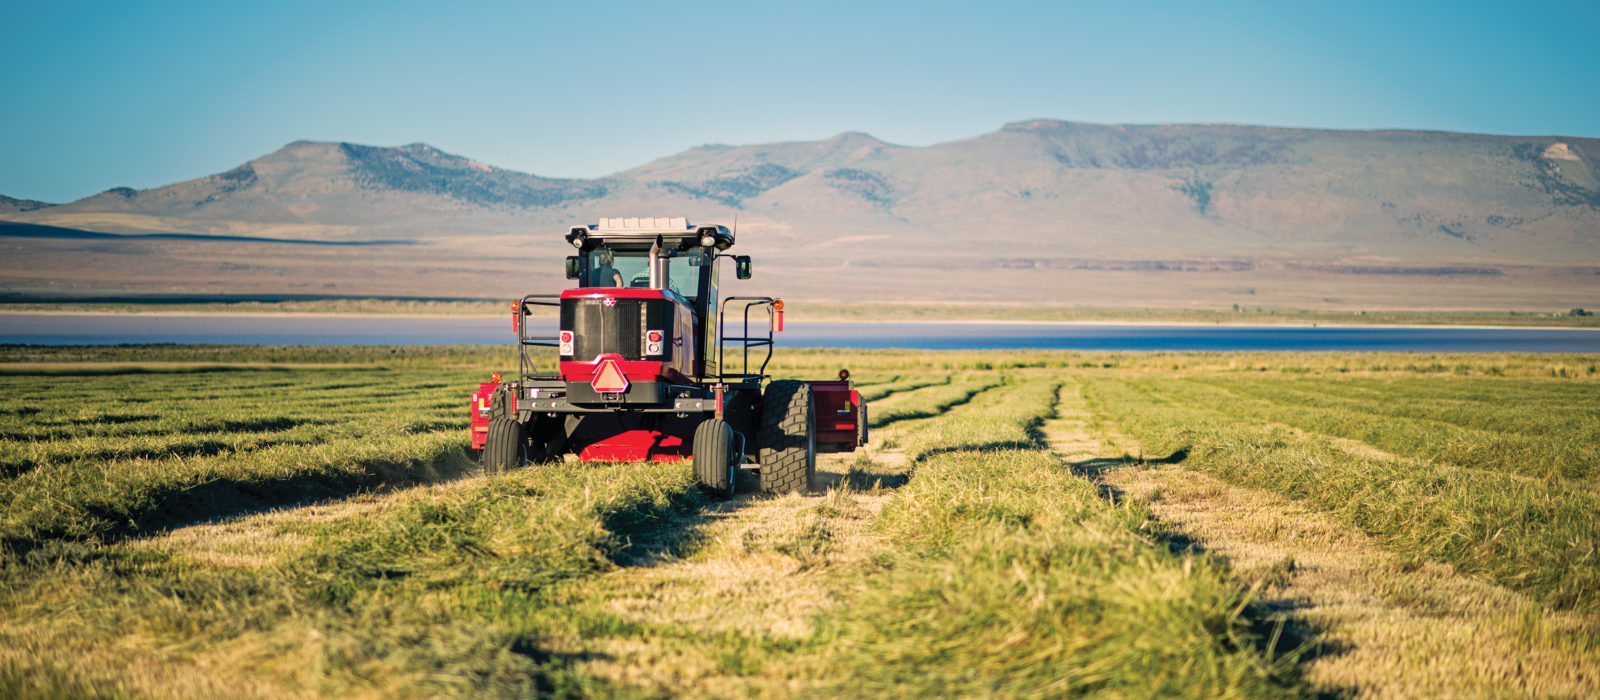 harvesting equipment in alfalfa field